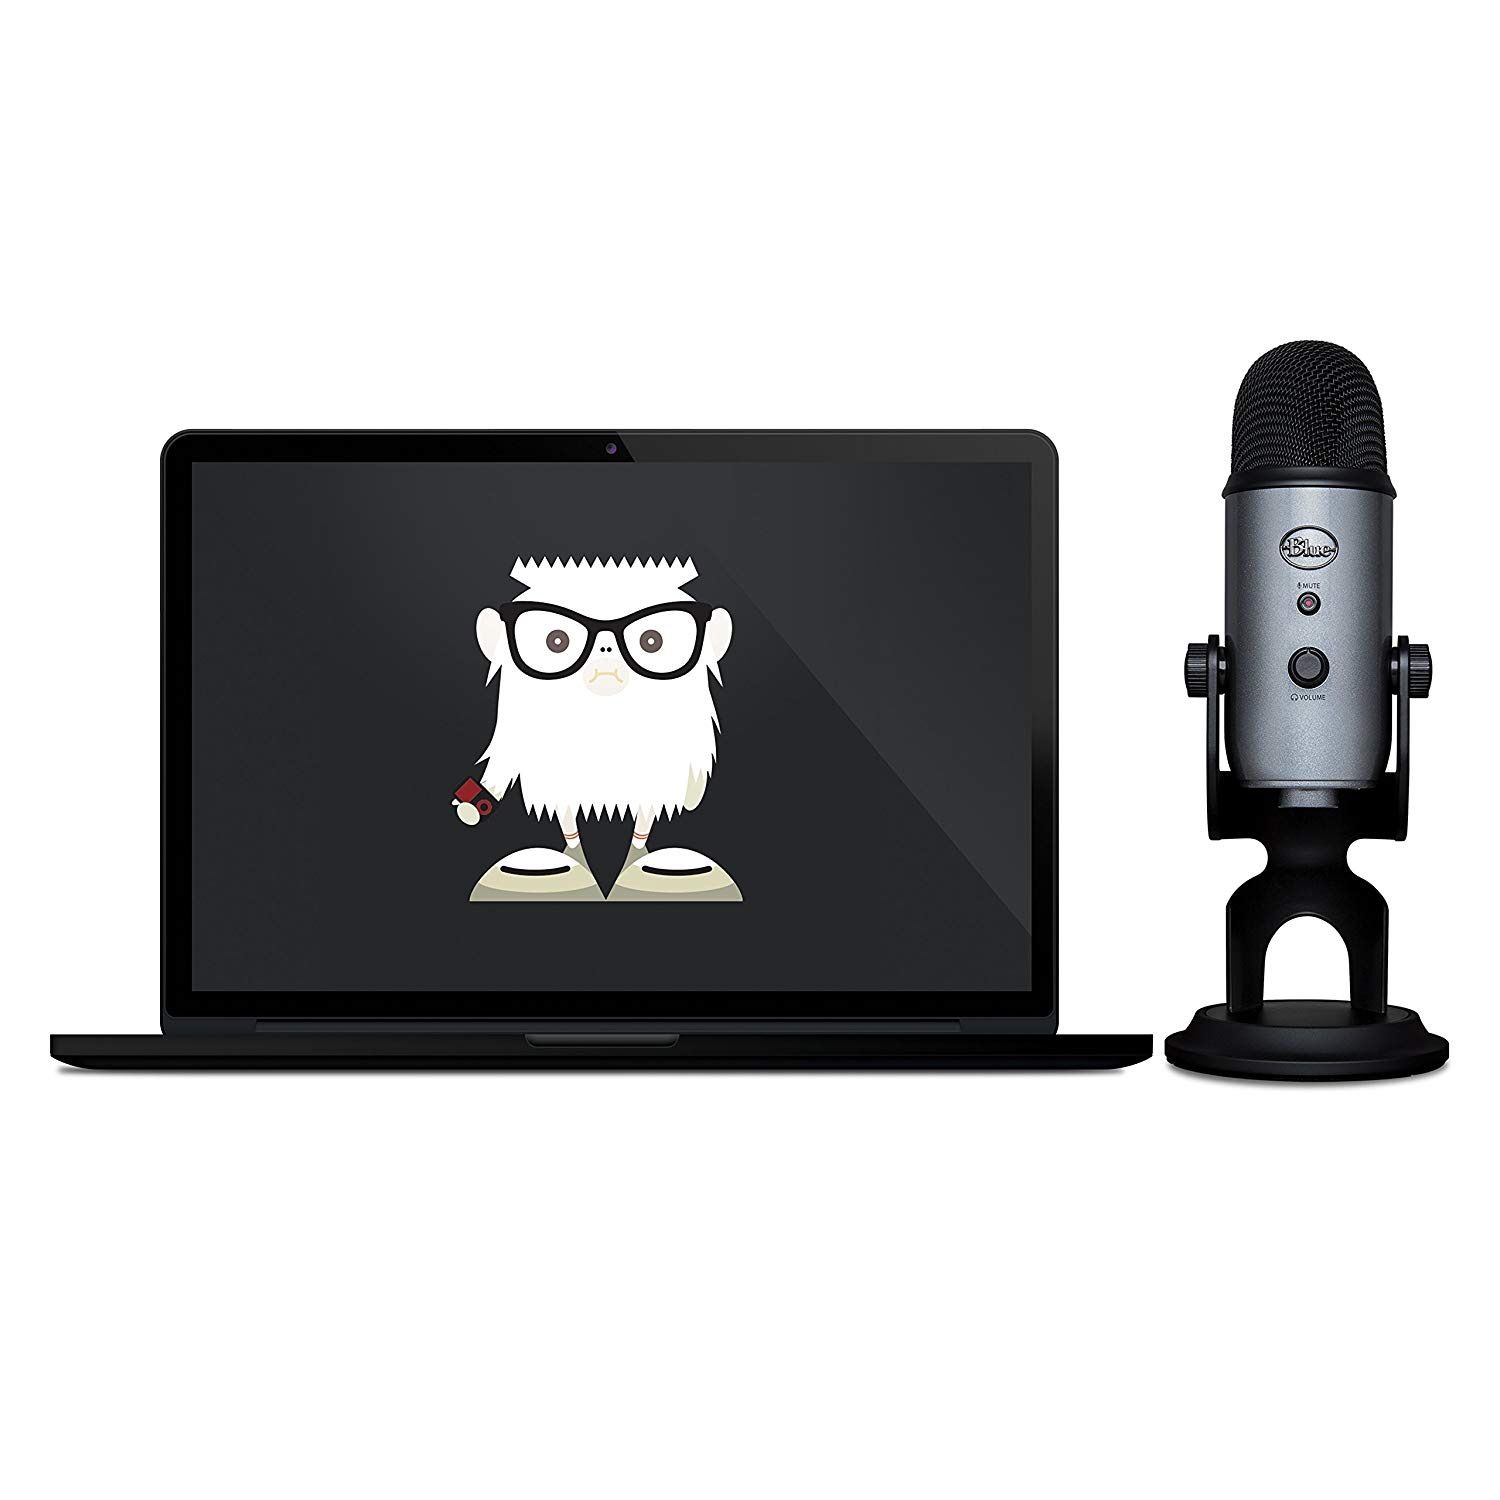 the best usb podcasting microphone is 40 off for prime day android central. Black Bedroom Furniture Sets. Home Design Ideas